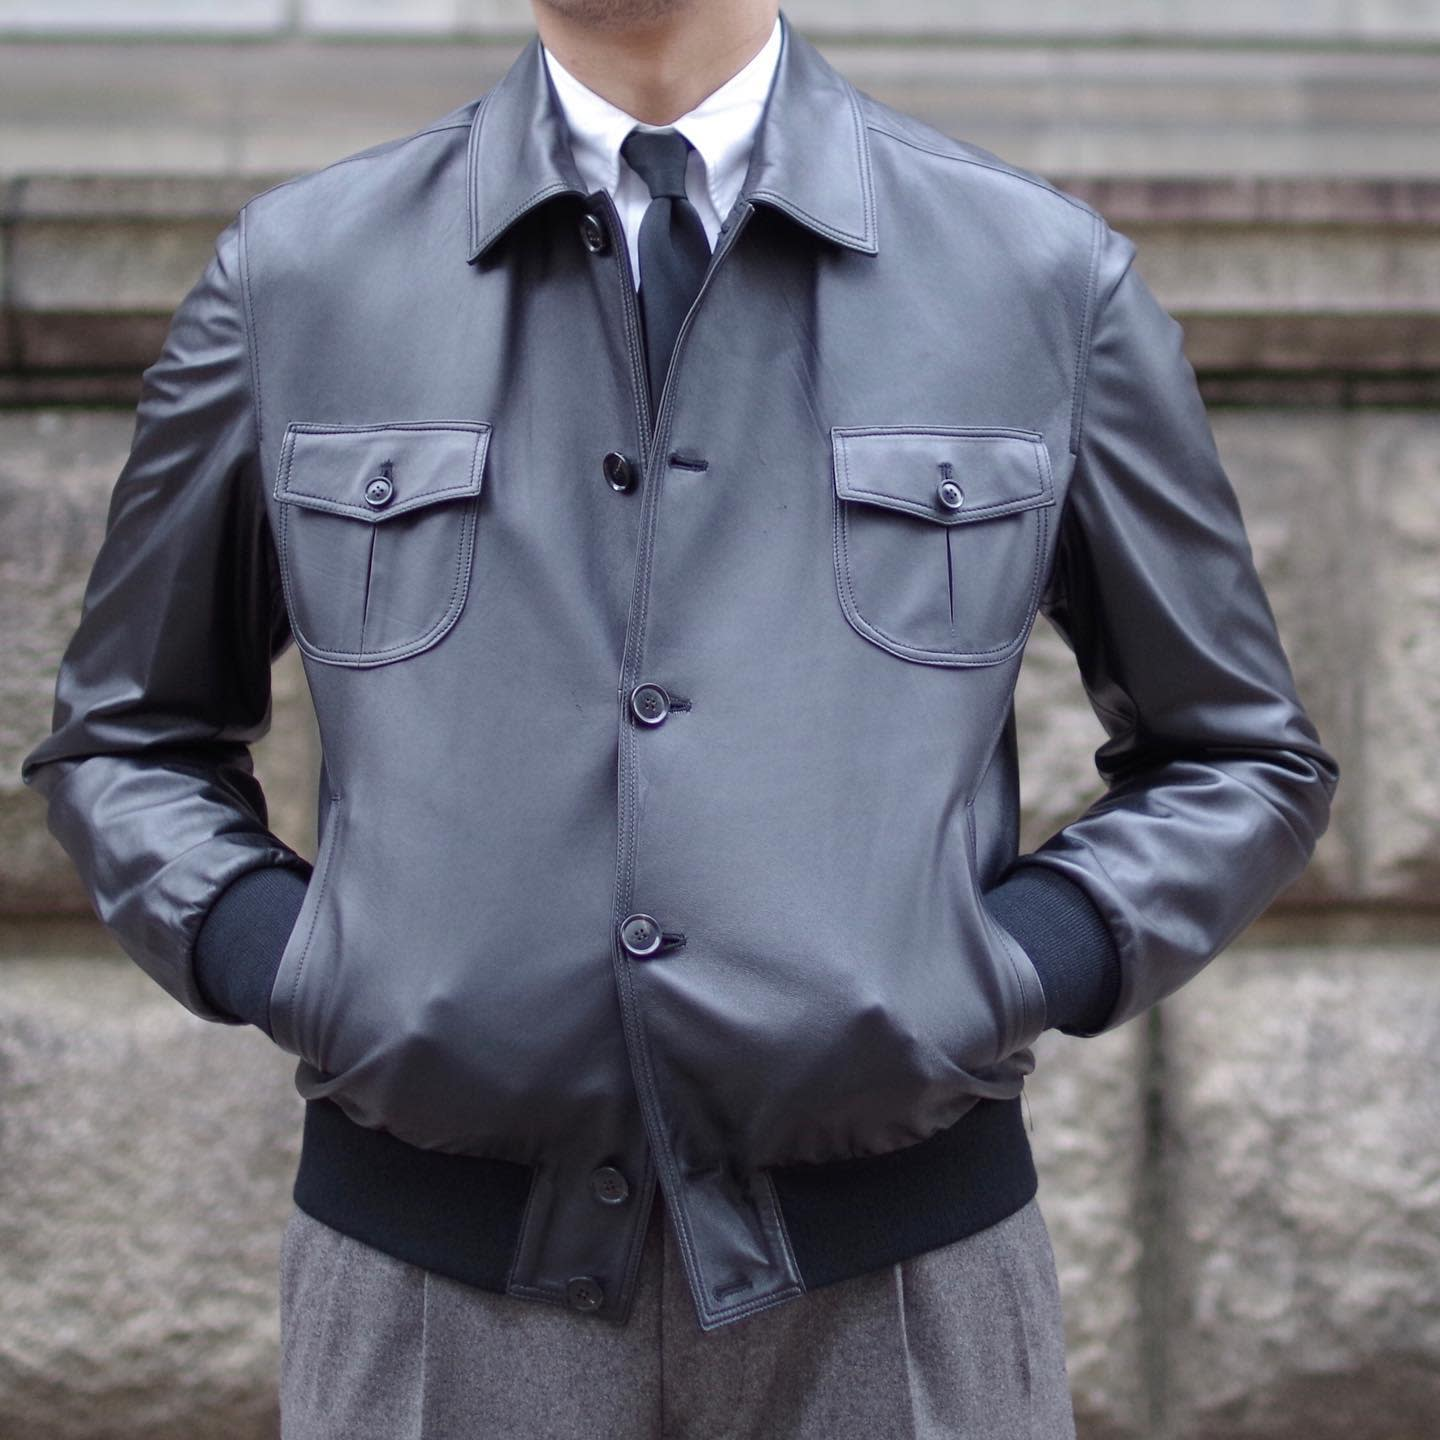 Formal Leather Jacket Styles -mitsukoshi_mens_personal_order